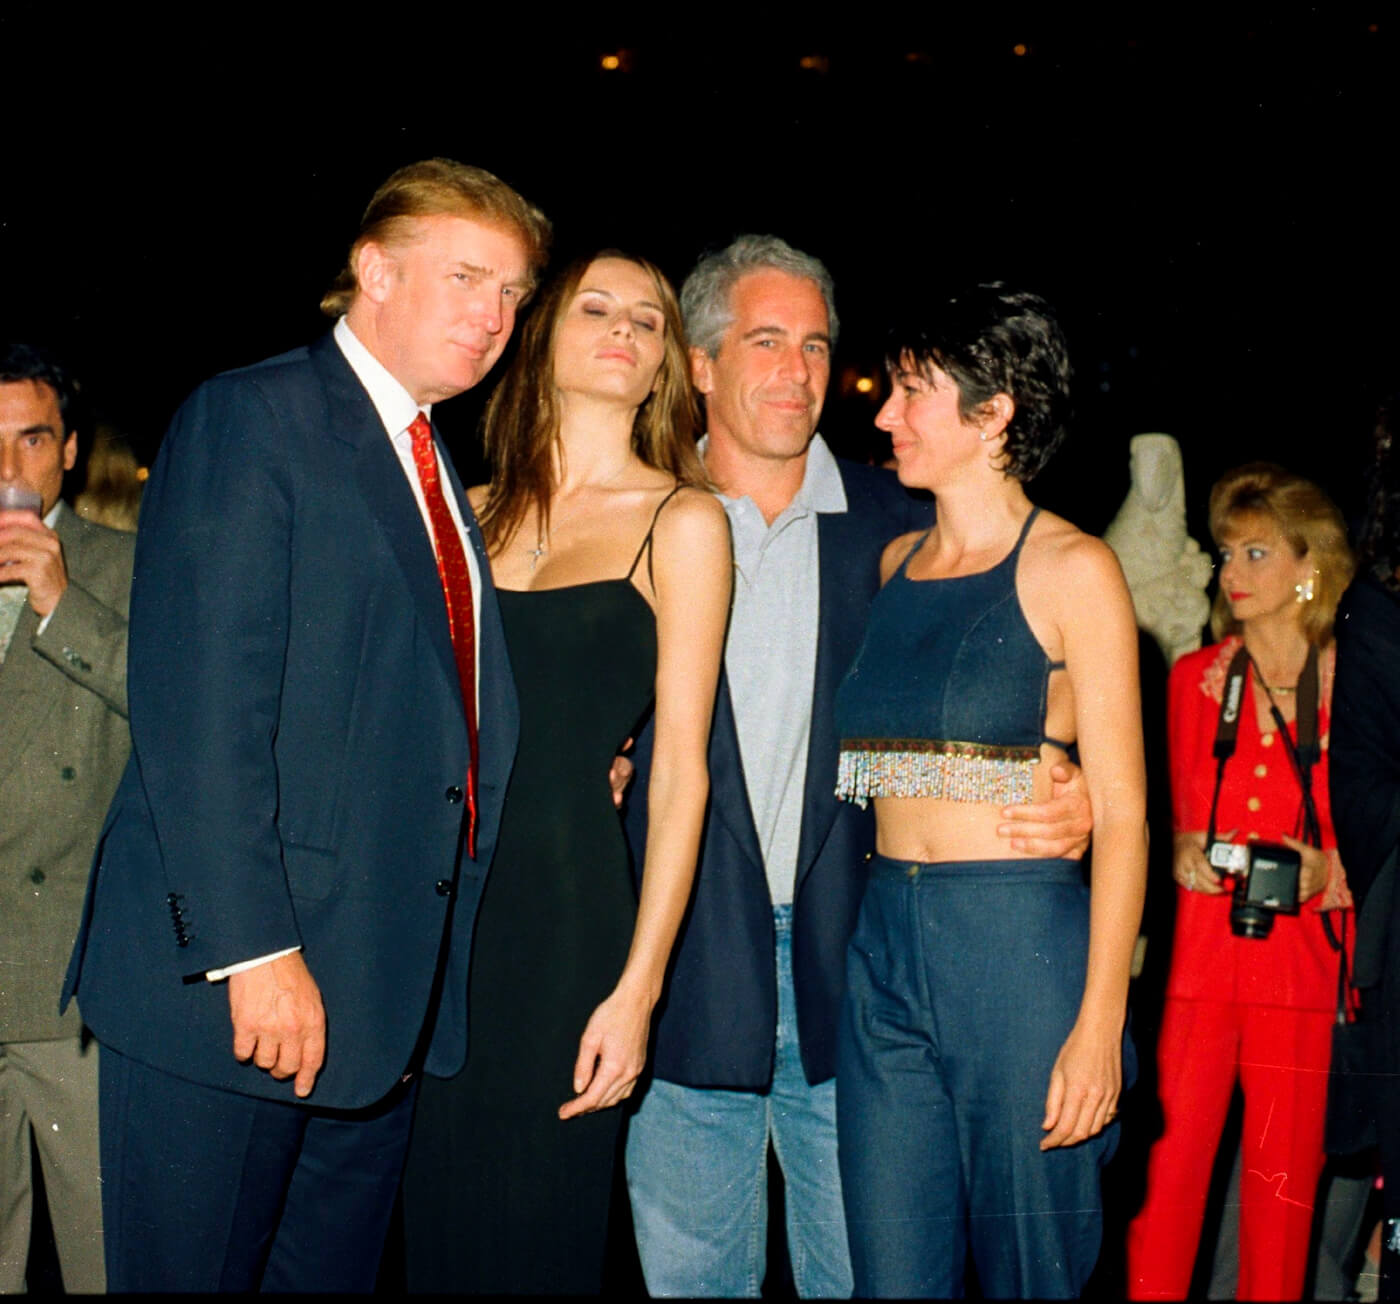 Donald and Melania Trump with Jeffrey Epstein and Ghislaine Maxwell at the Mar-a-Lago club, Palm Beach, Florida in 2000. Photo | Davidoff Studios